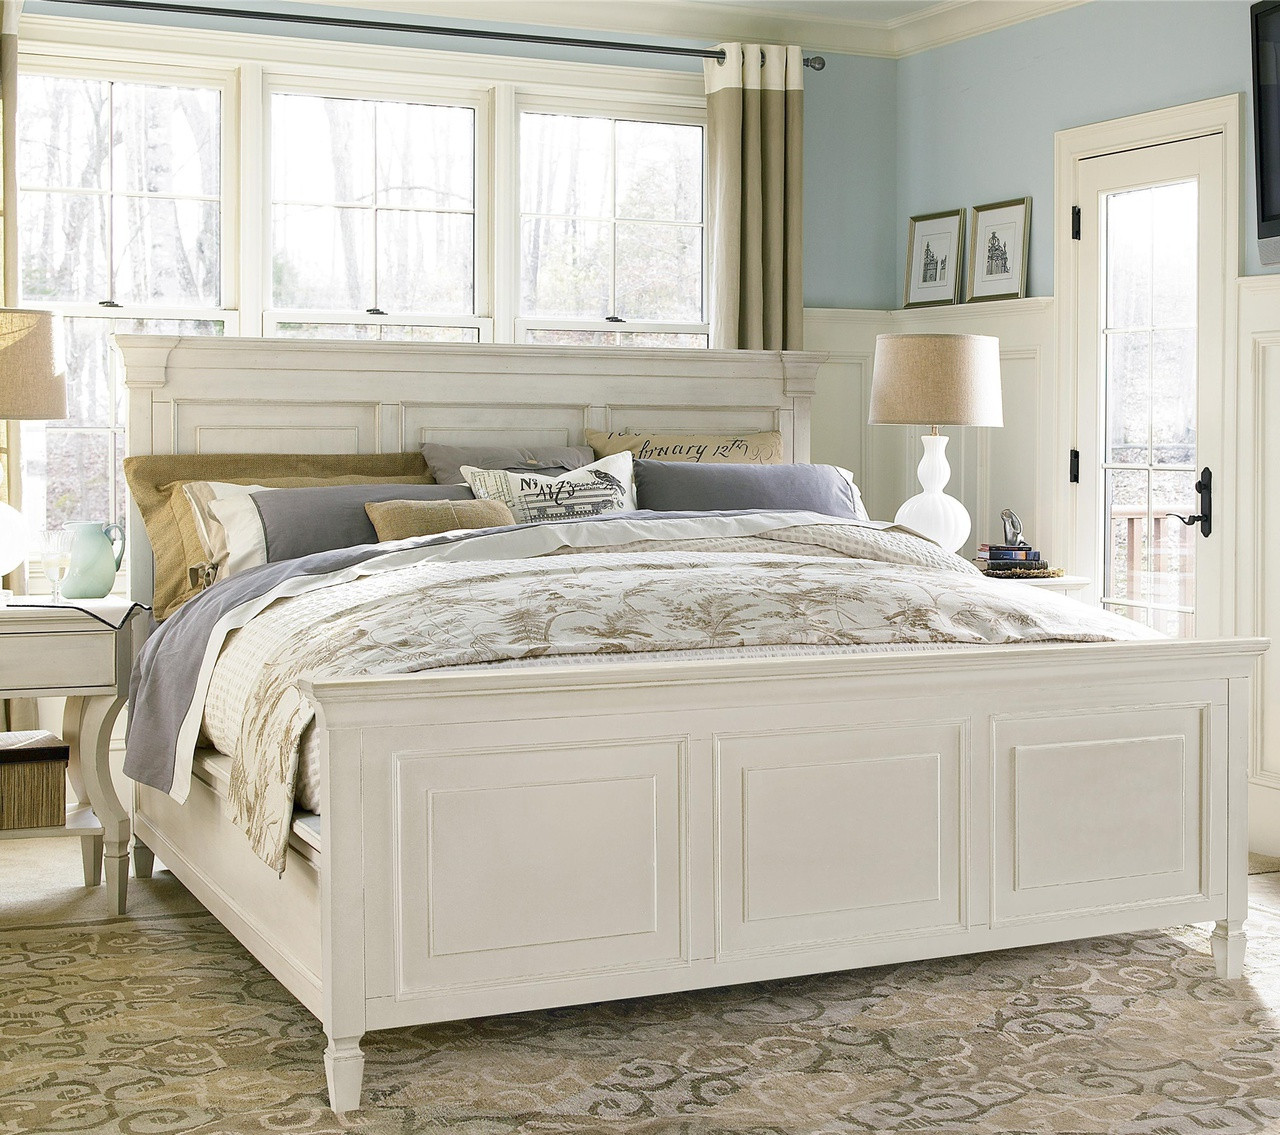 Country Chic White King Panel Bed Frame | Zin Home